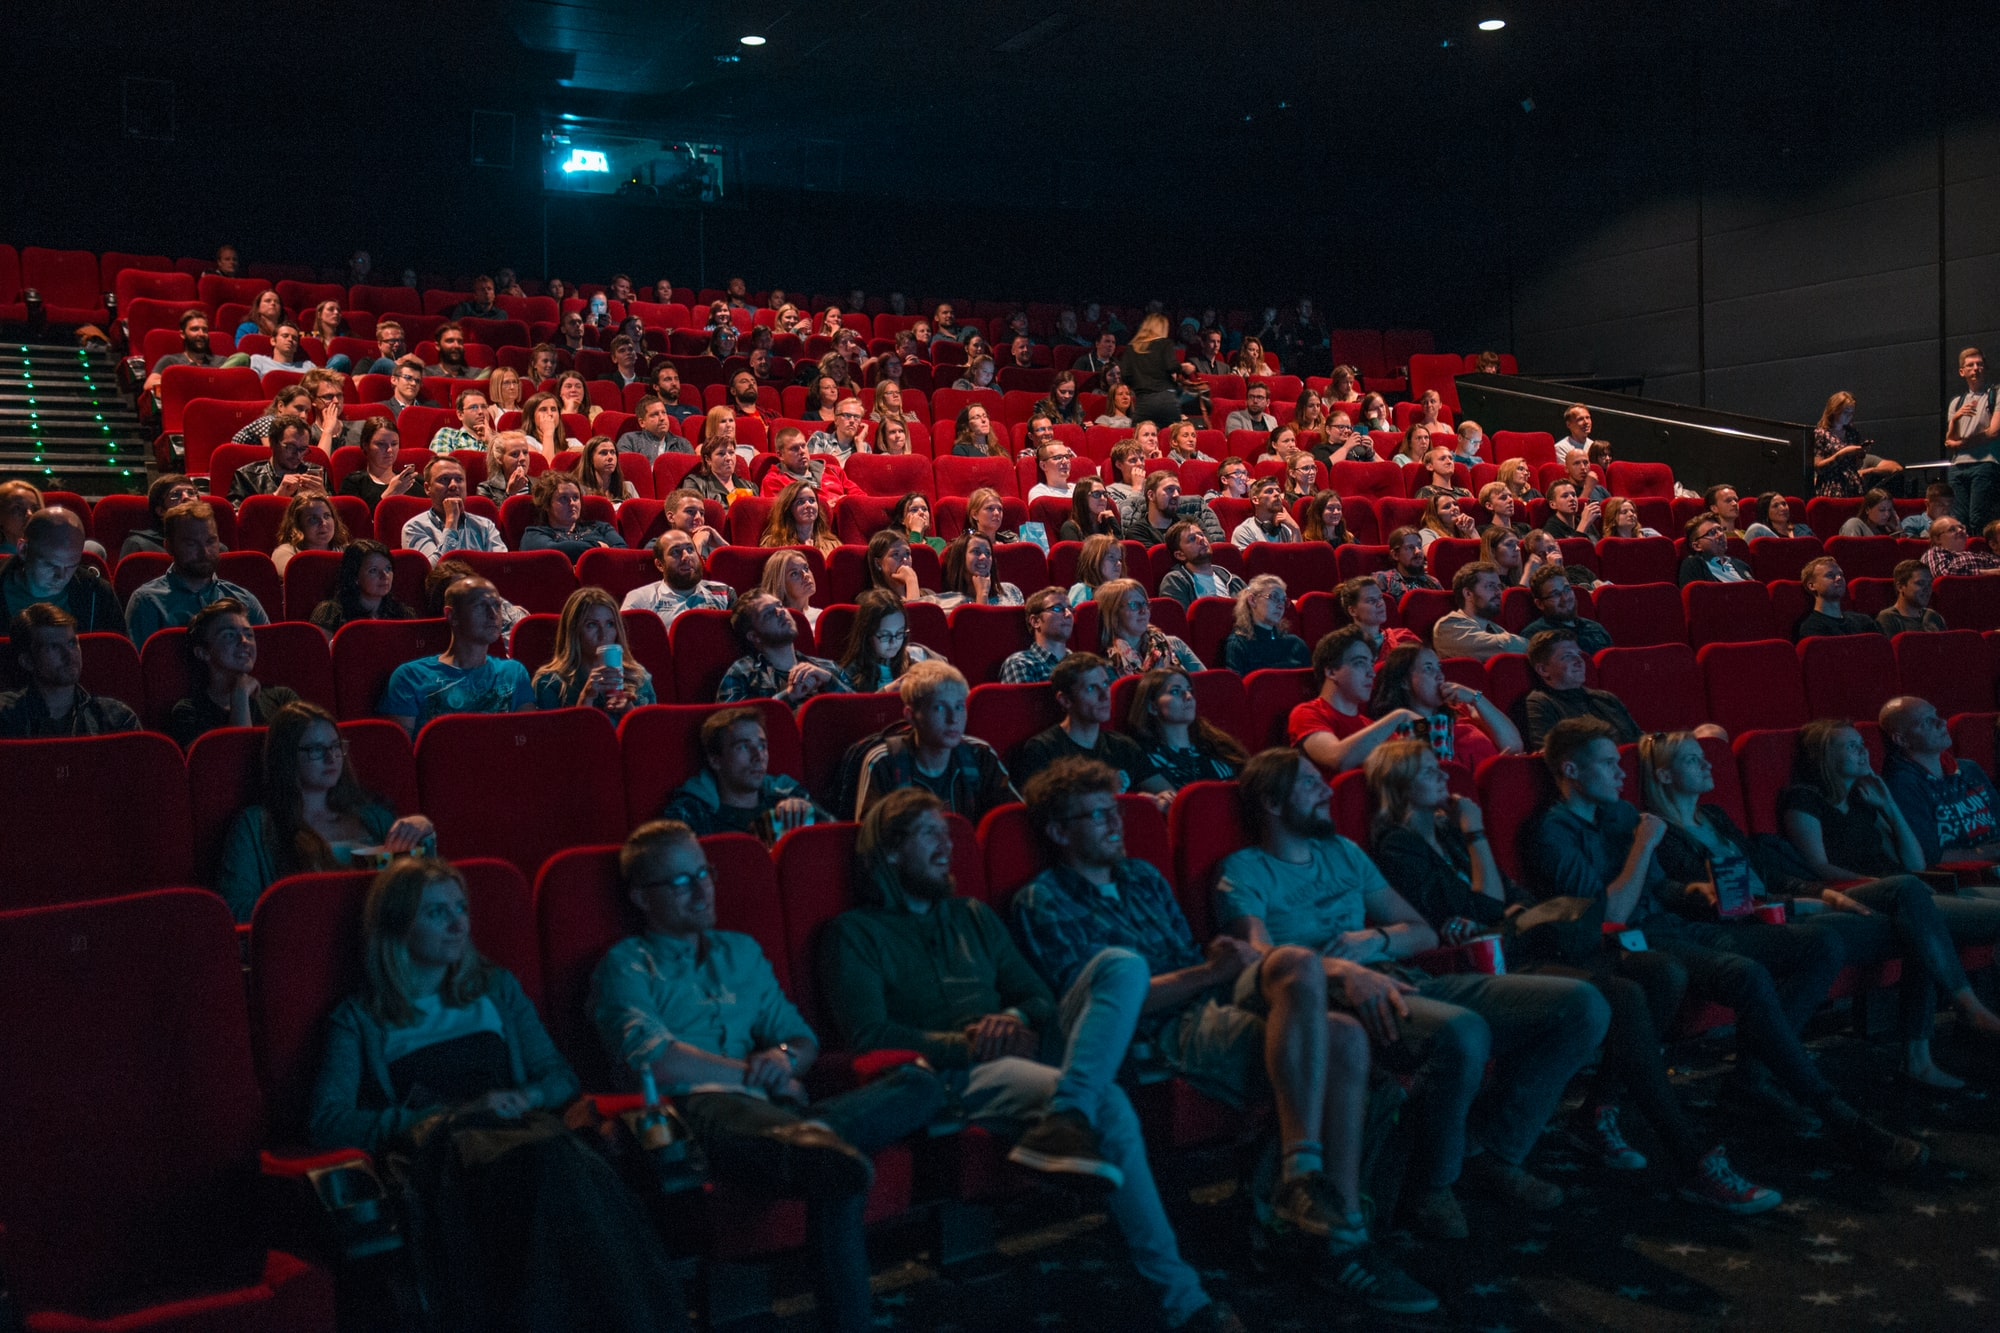 People watching the new Game of thrones episode in cinema